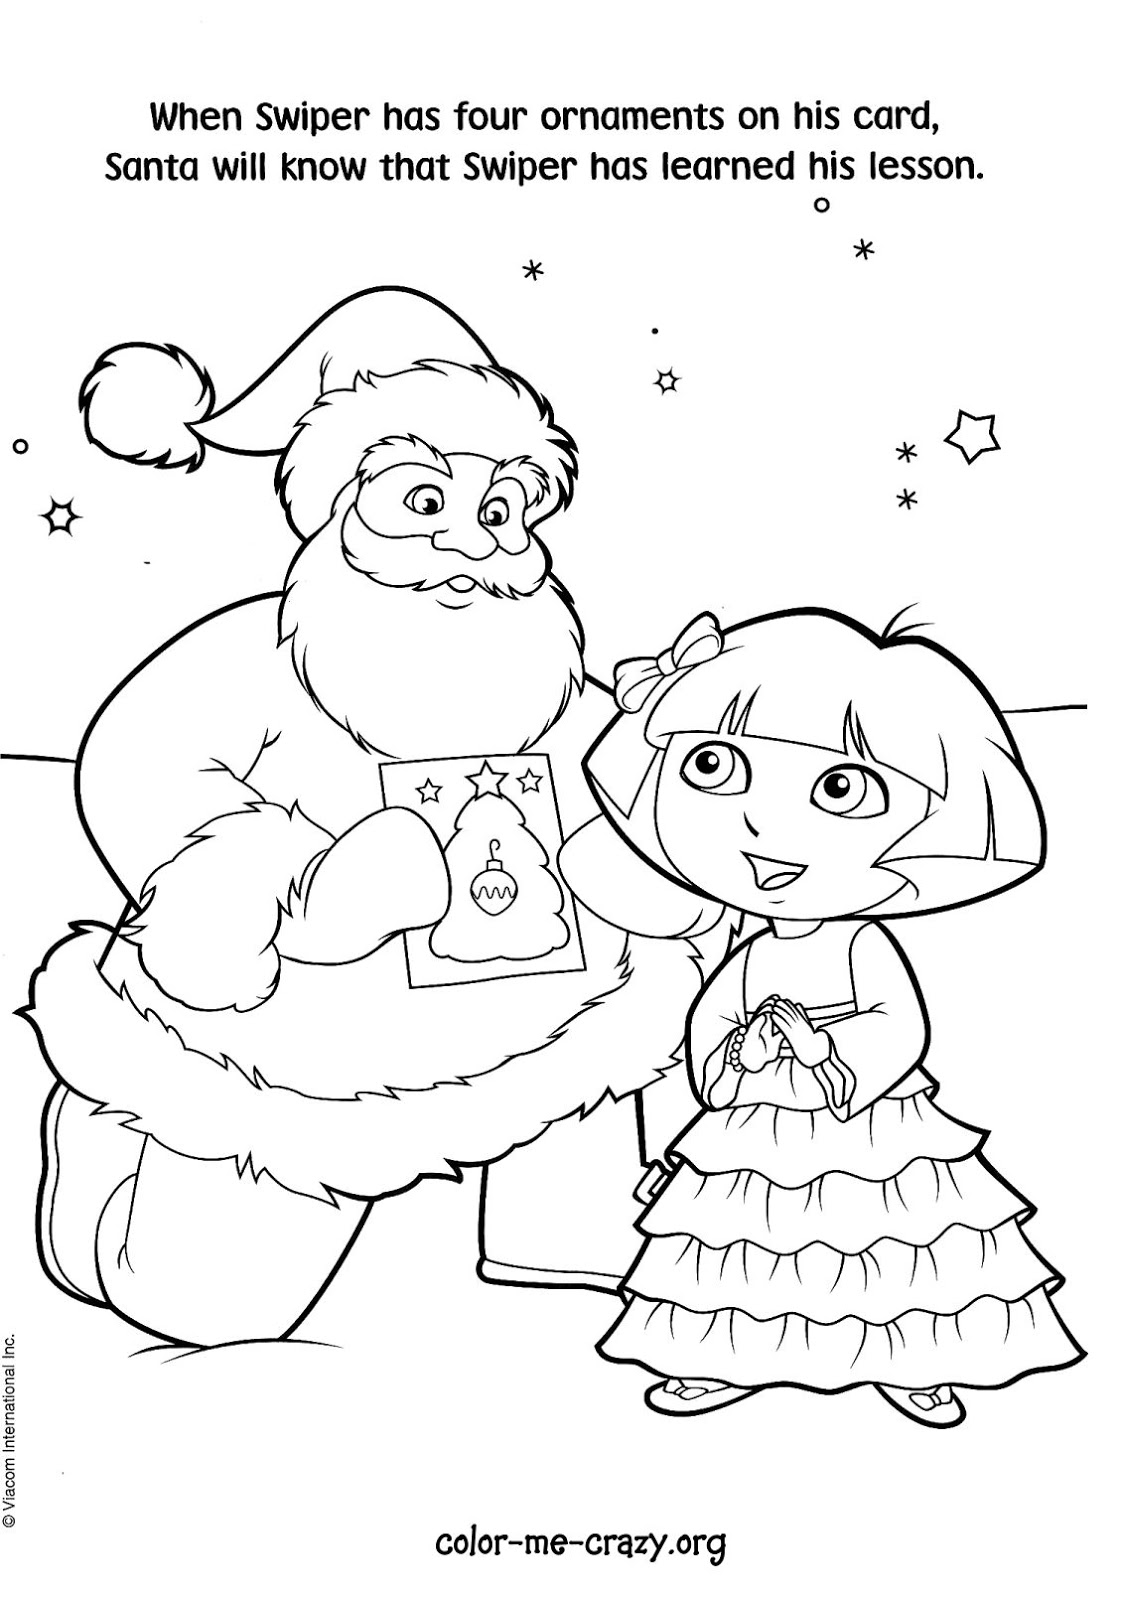 ColorMeCrazy.org: Dora the Explorer - Christmas is Coming